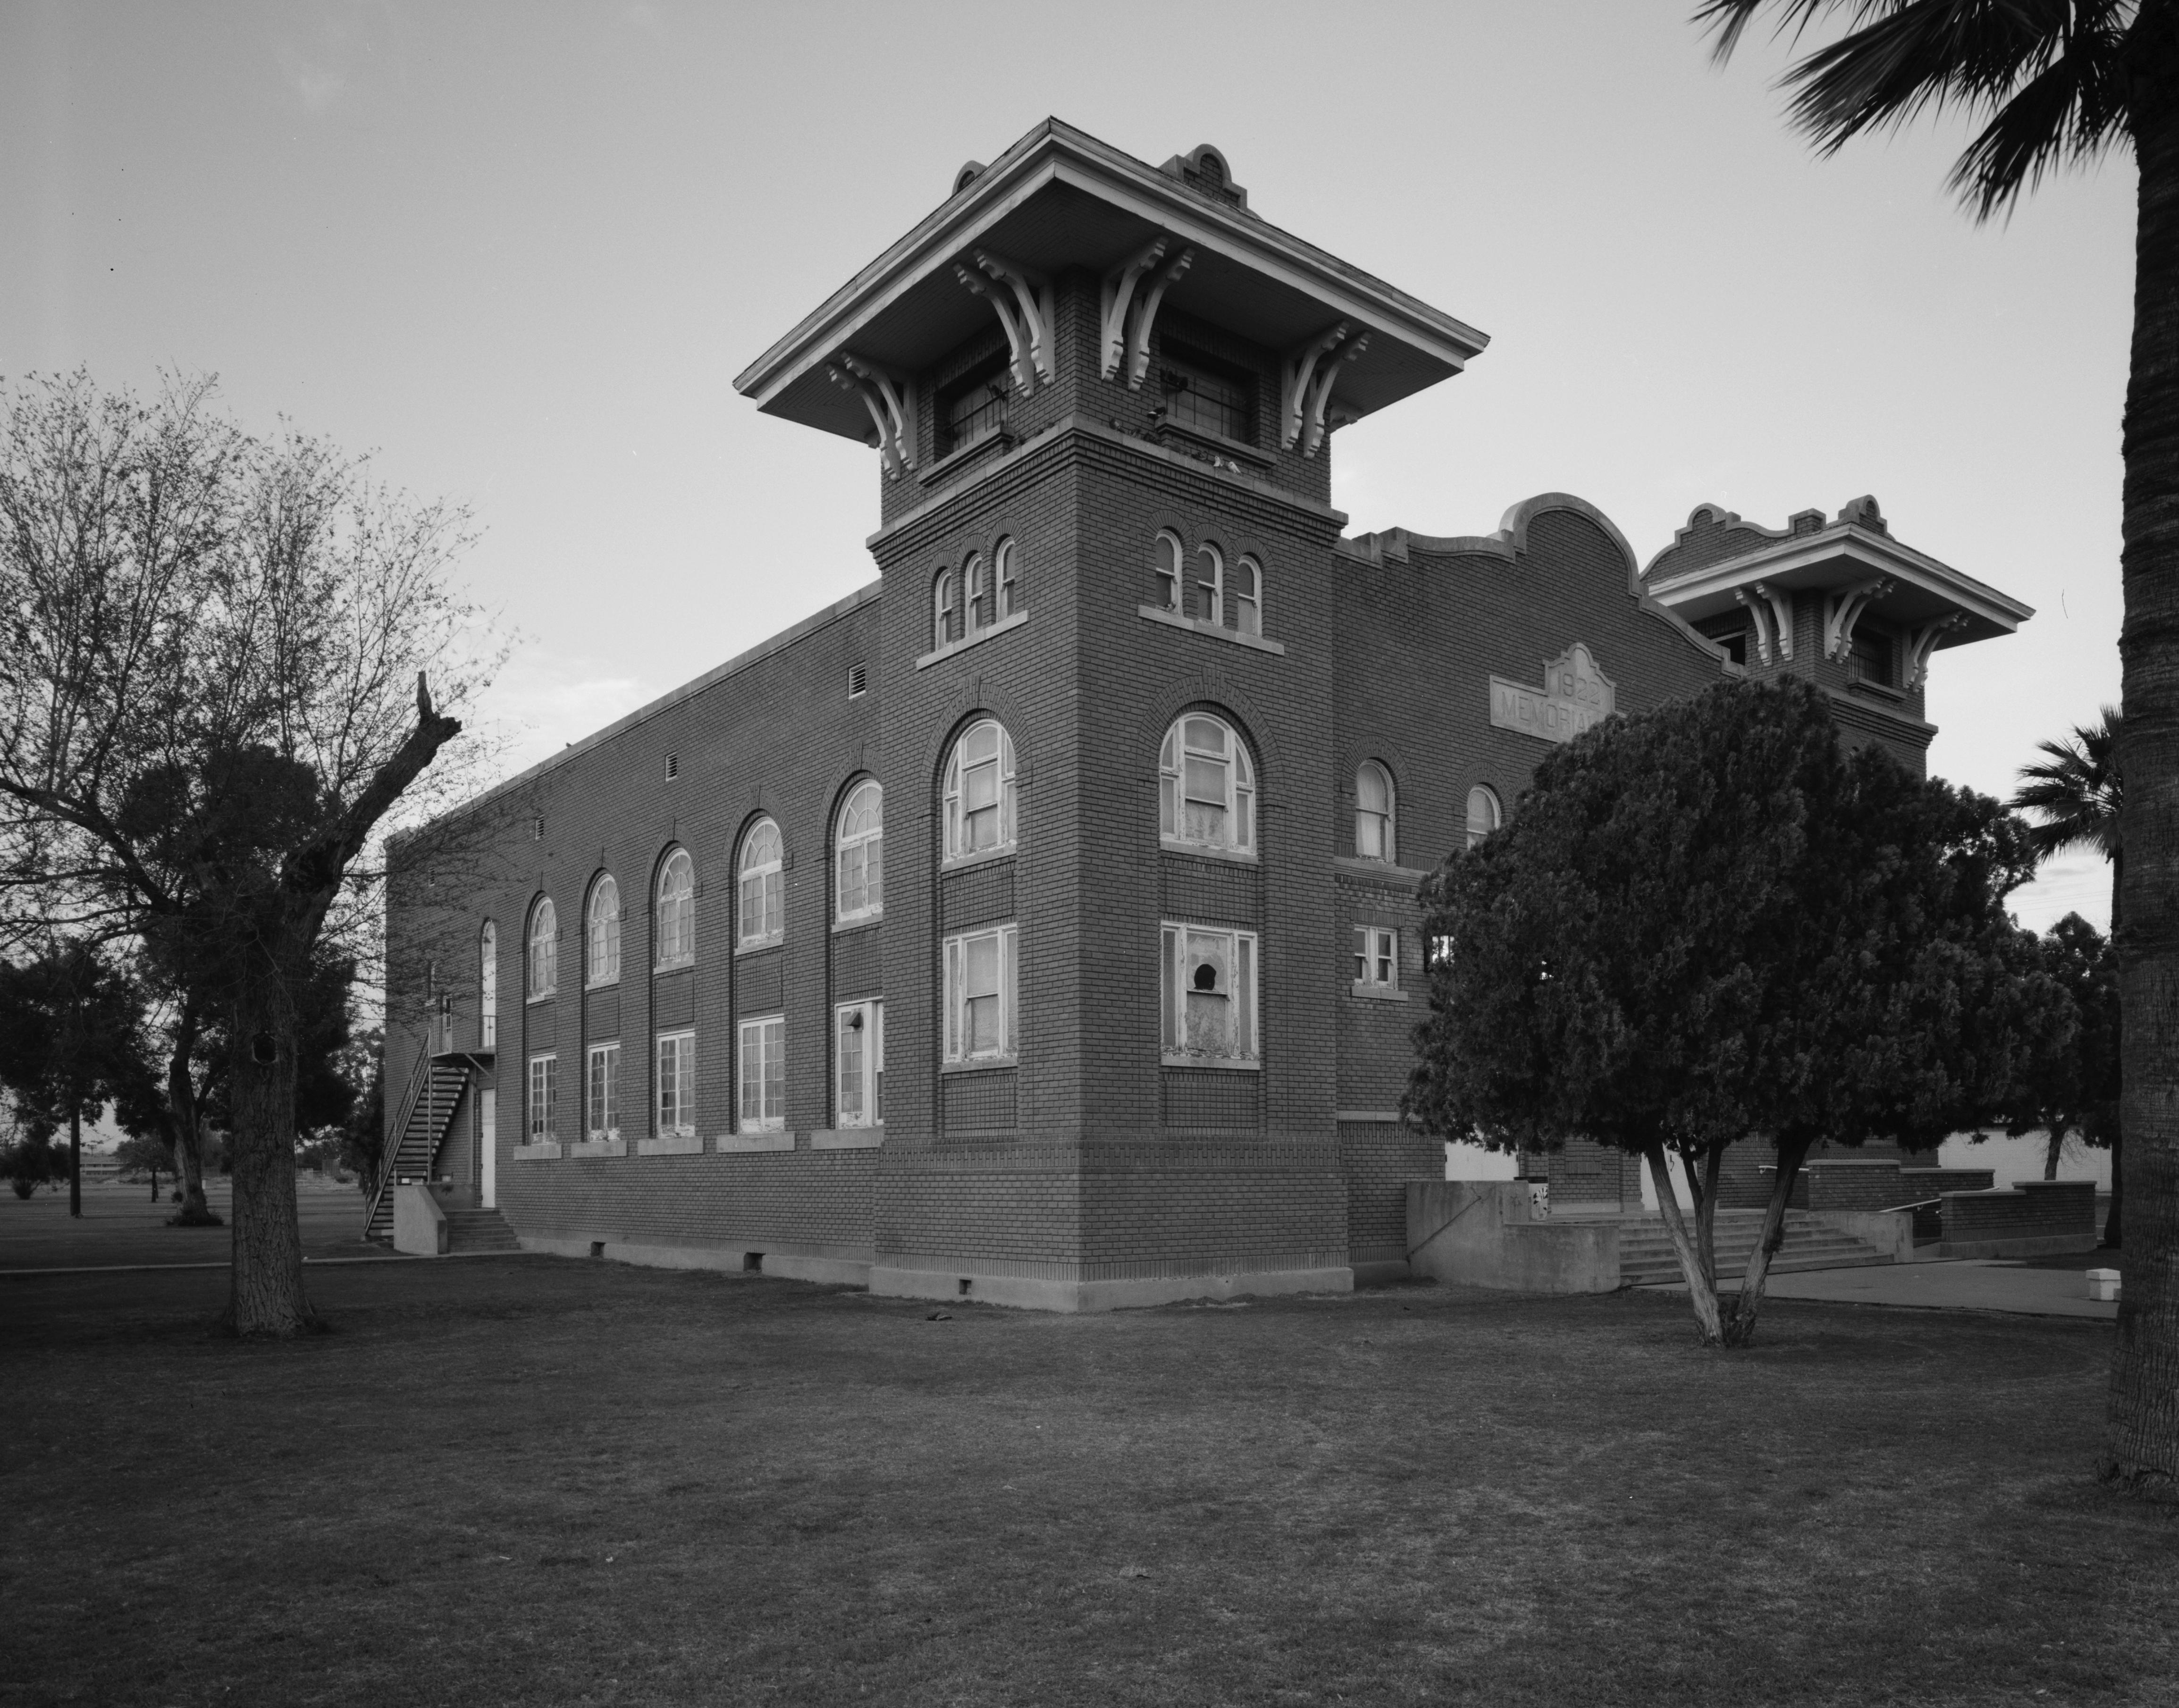 a history of the phoenix indian school This book provides an overview of the history of the phoenix indian school from 1891 through 1935 the phoenix indian industrial boarding school was founded for the specific purpose of preparing native american children for assimilation.